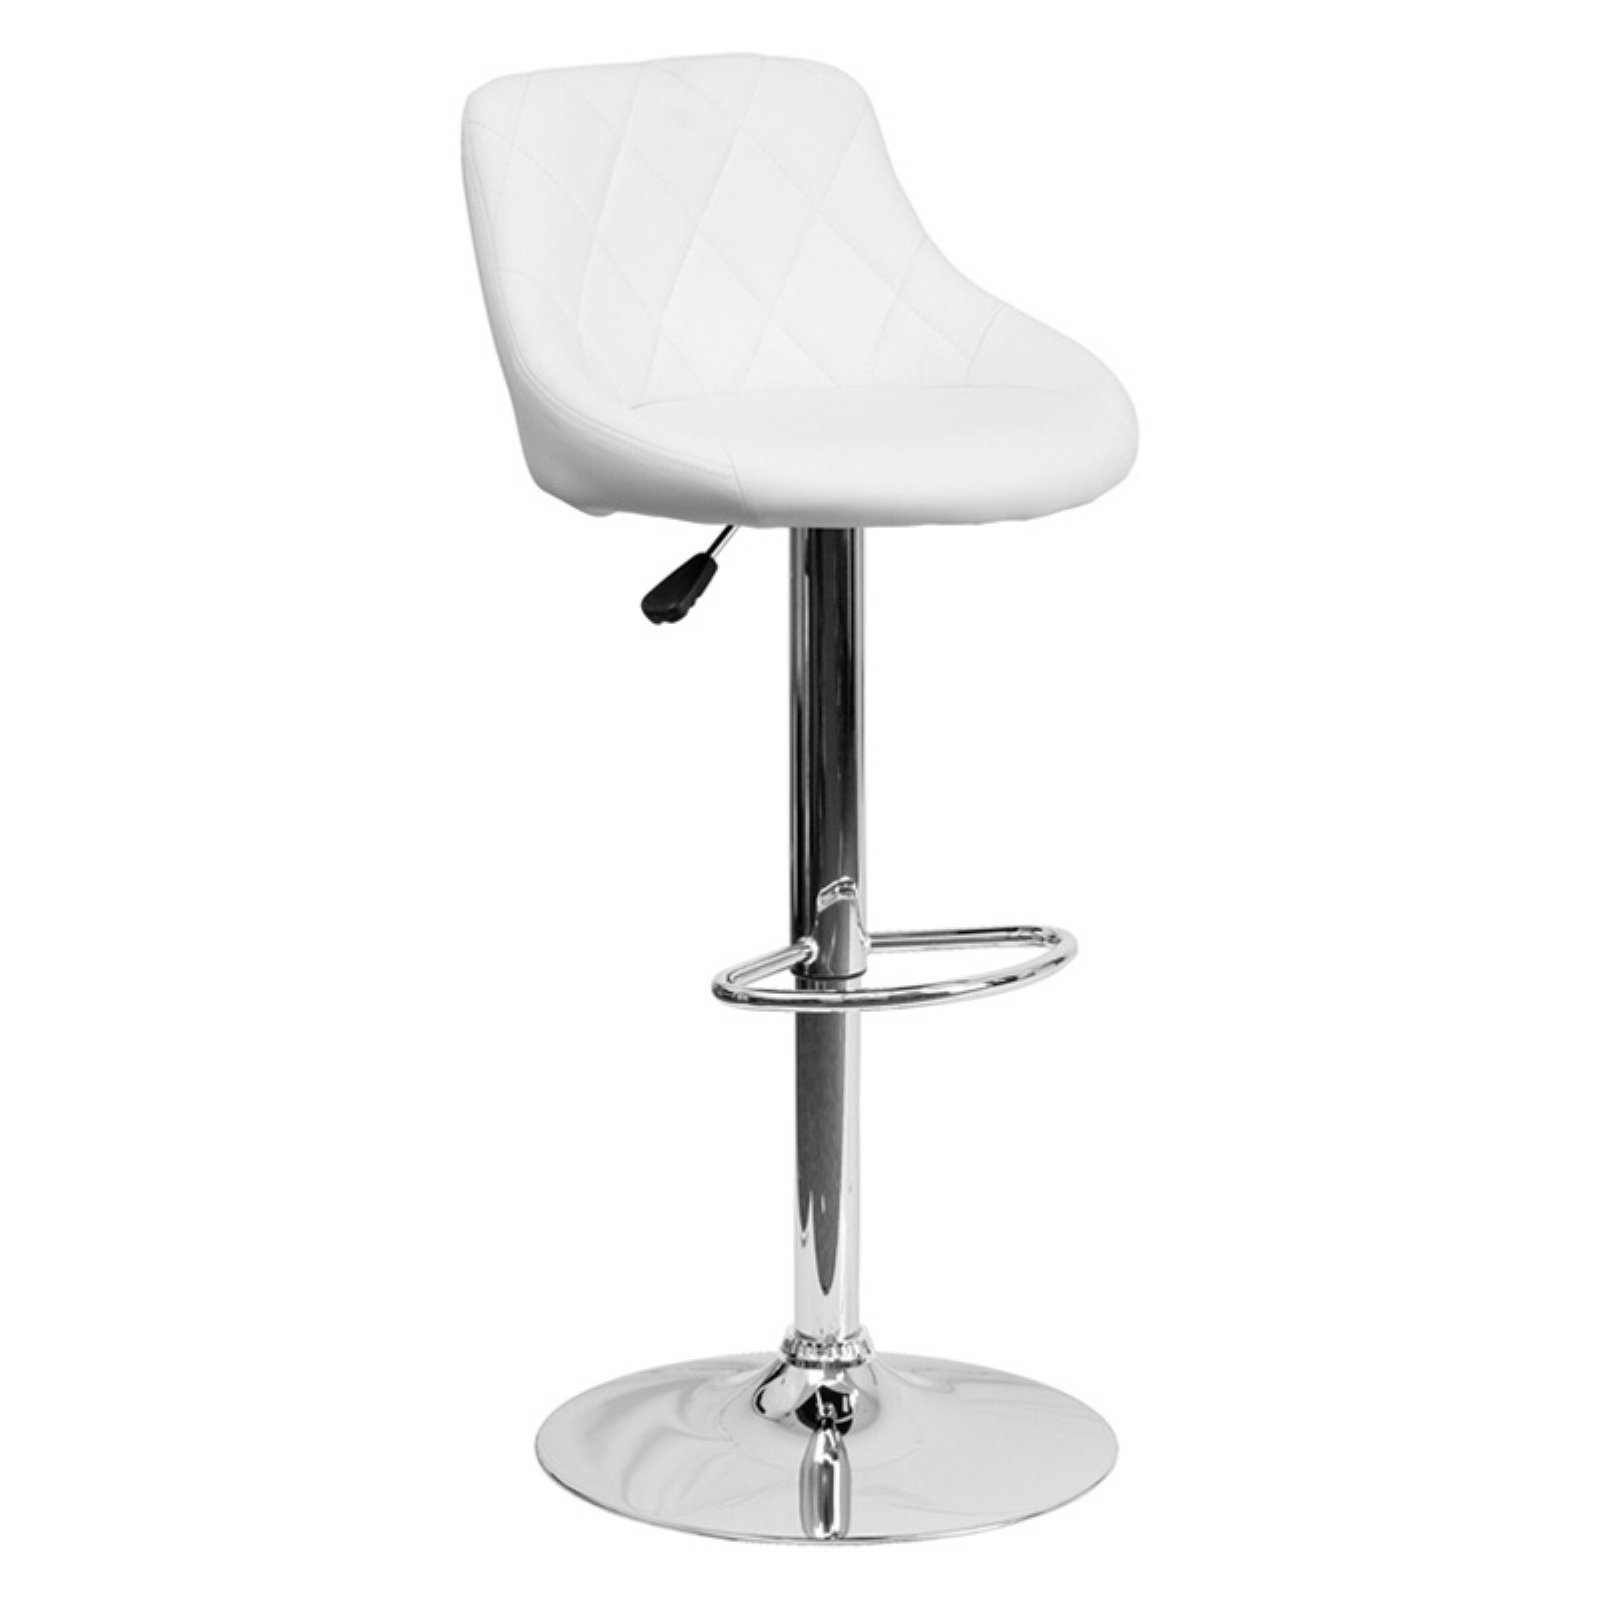 Flash Furniture Contemporary Bucket Seat Adjustable Bar Stool With Chrome Base White Adjustable Bar Stools Bar Stools Flash Furniture